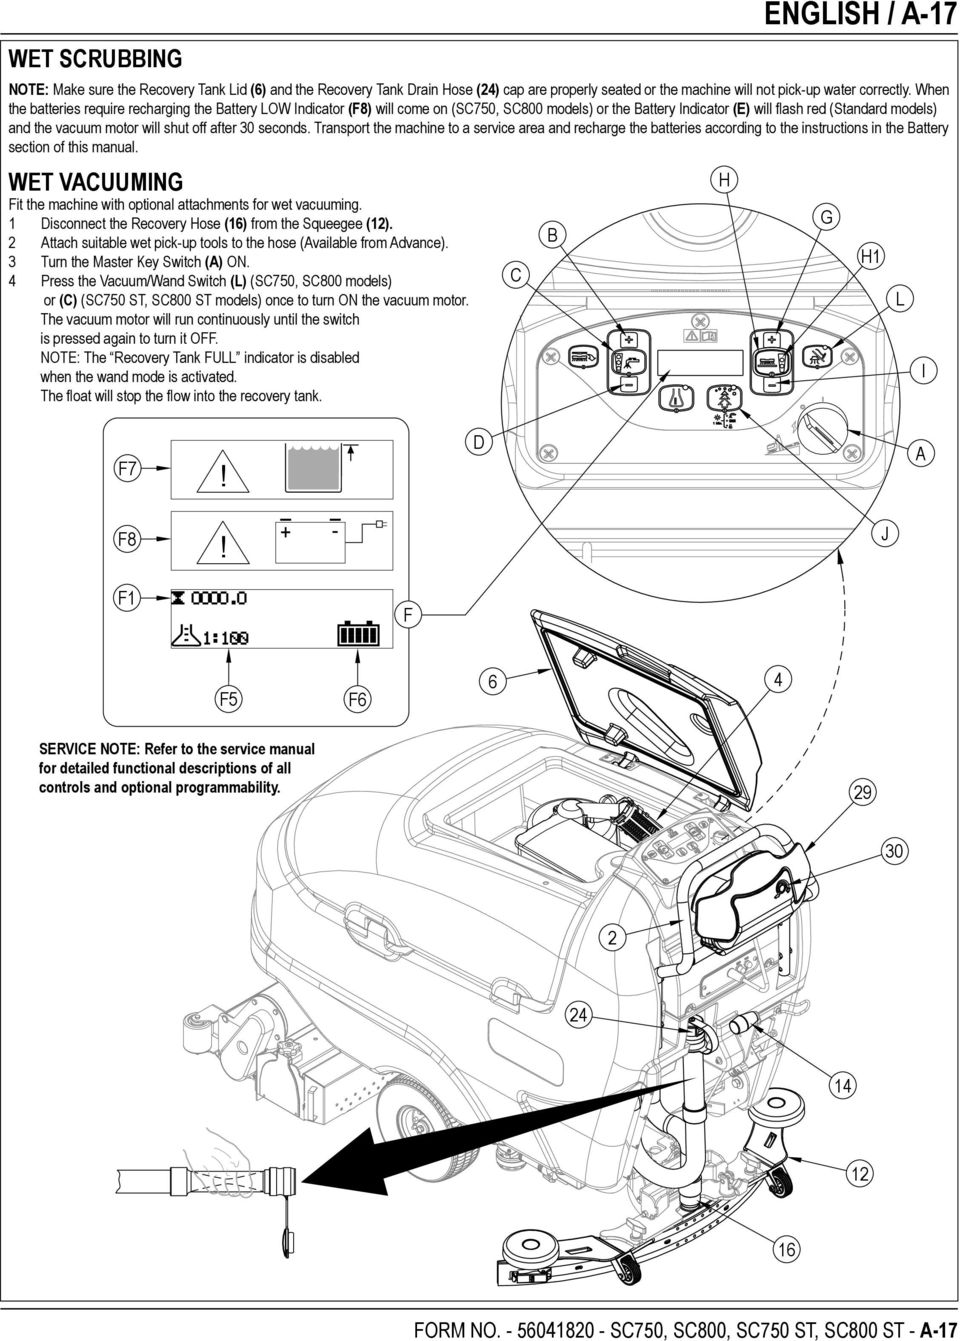 off after 30 seconds. Transport the machine to a service area and recharge the batteries according to the instructions in the Battery section of this manual.